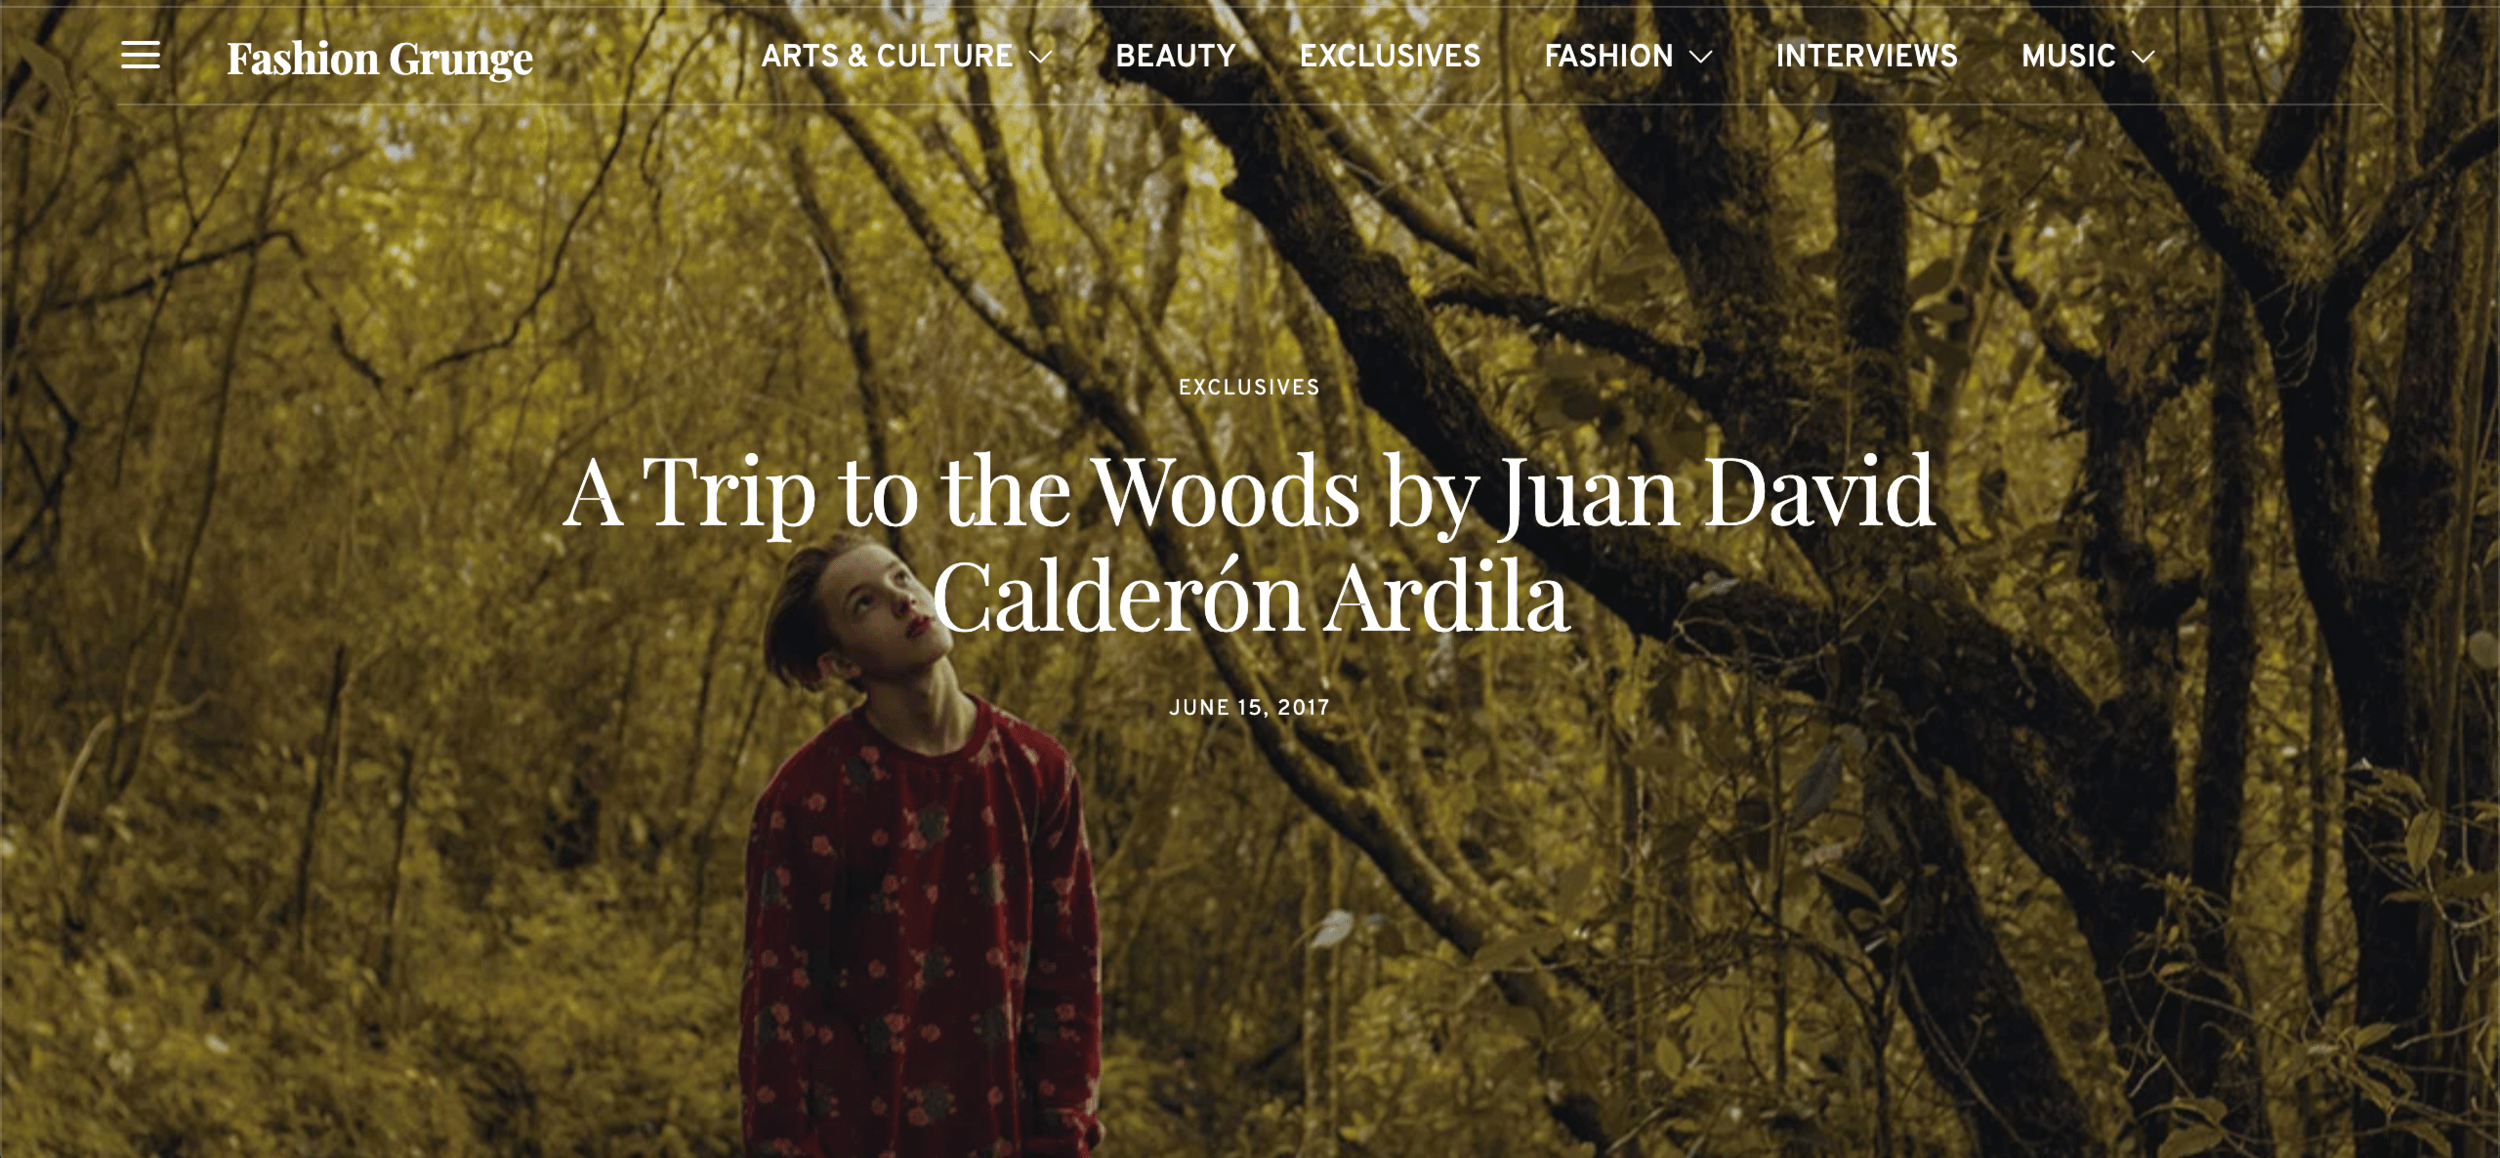 A trip to the woods for Fashion Grunge